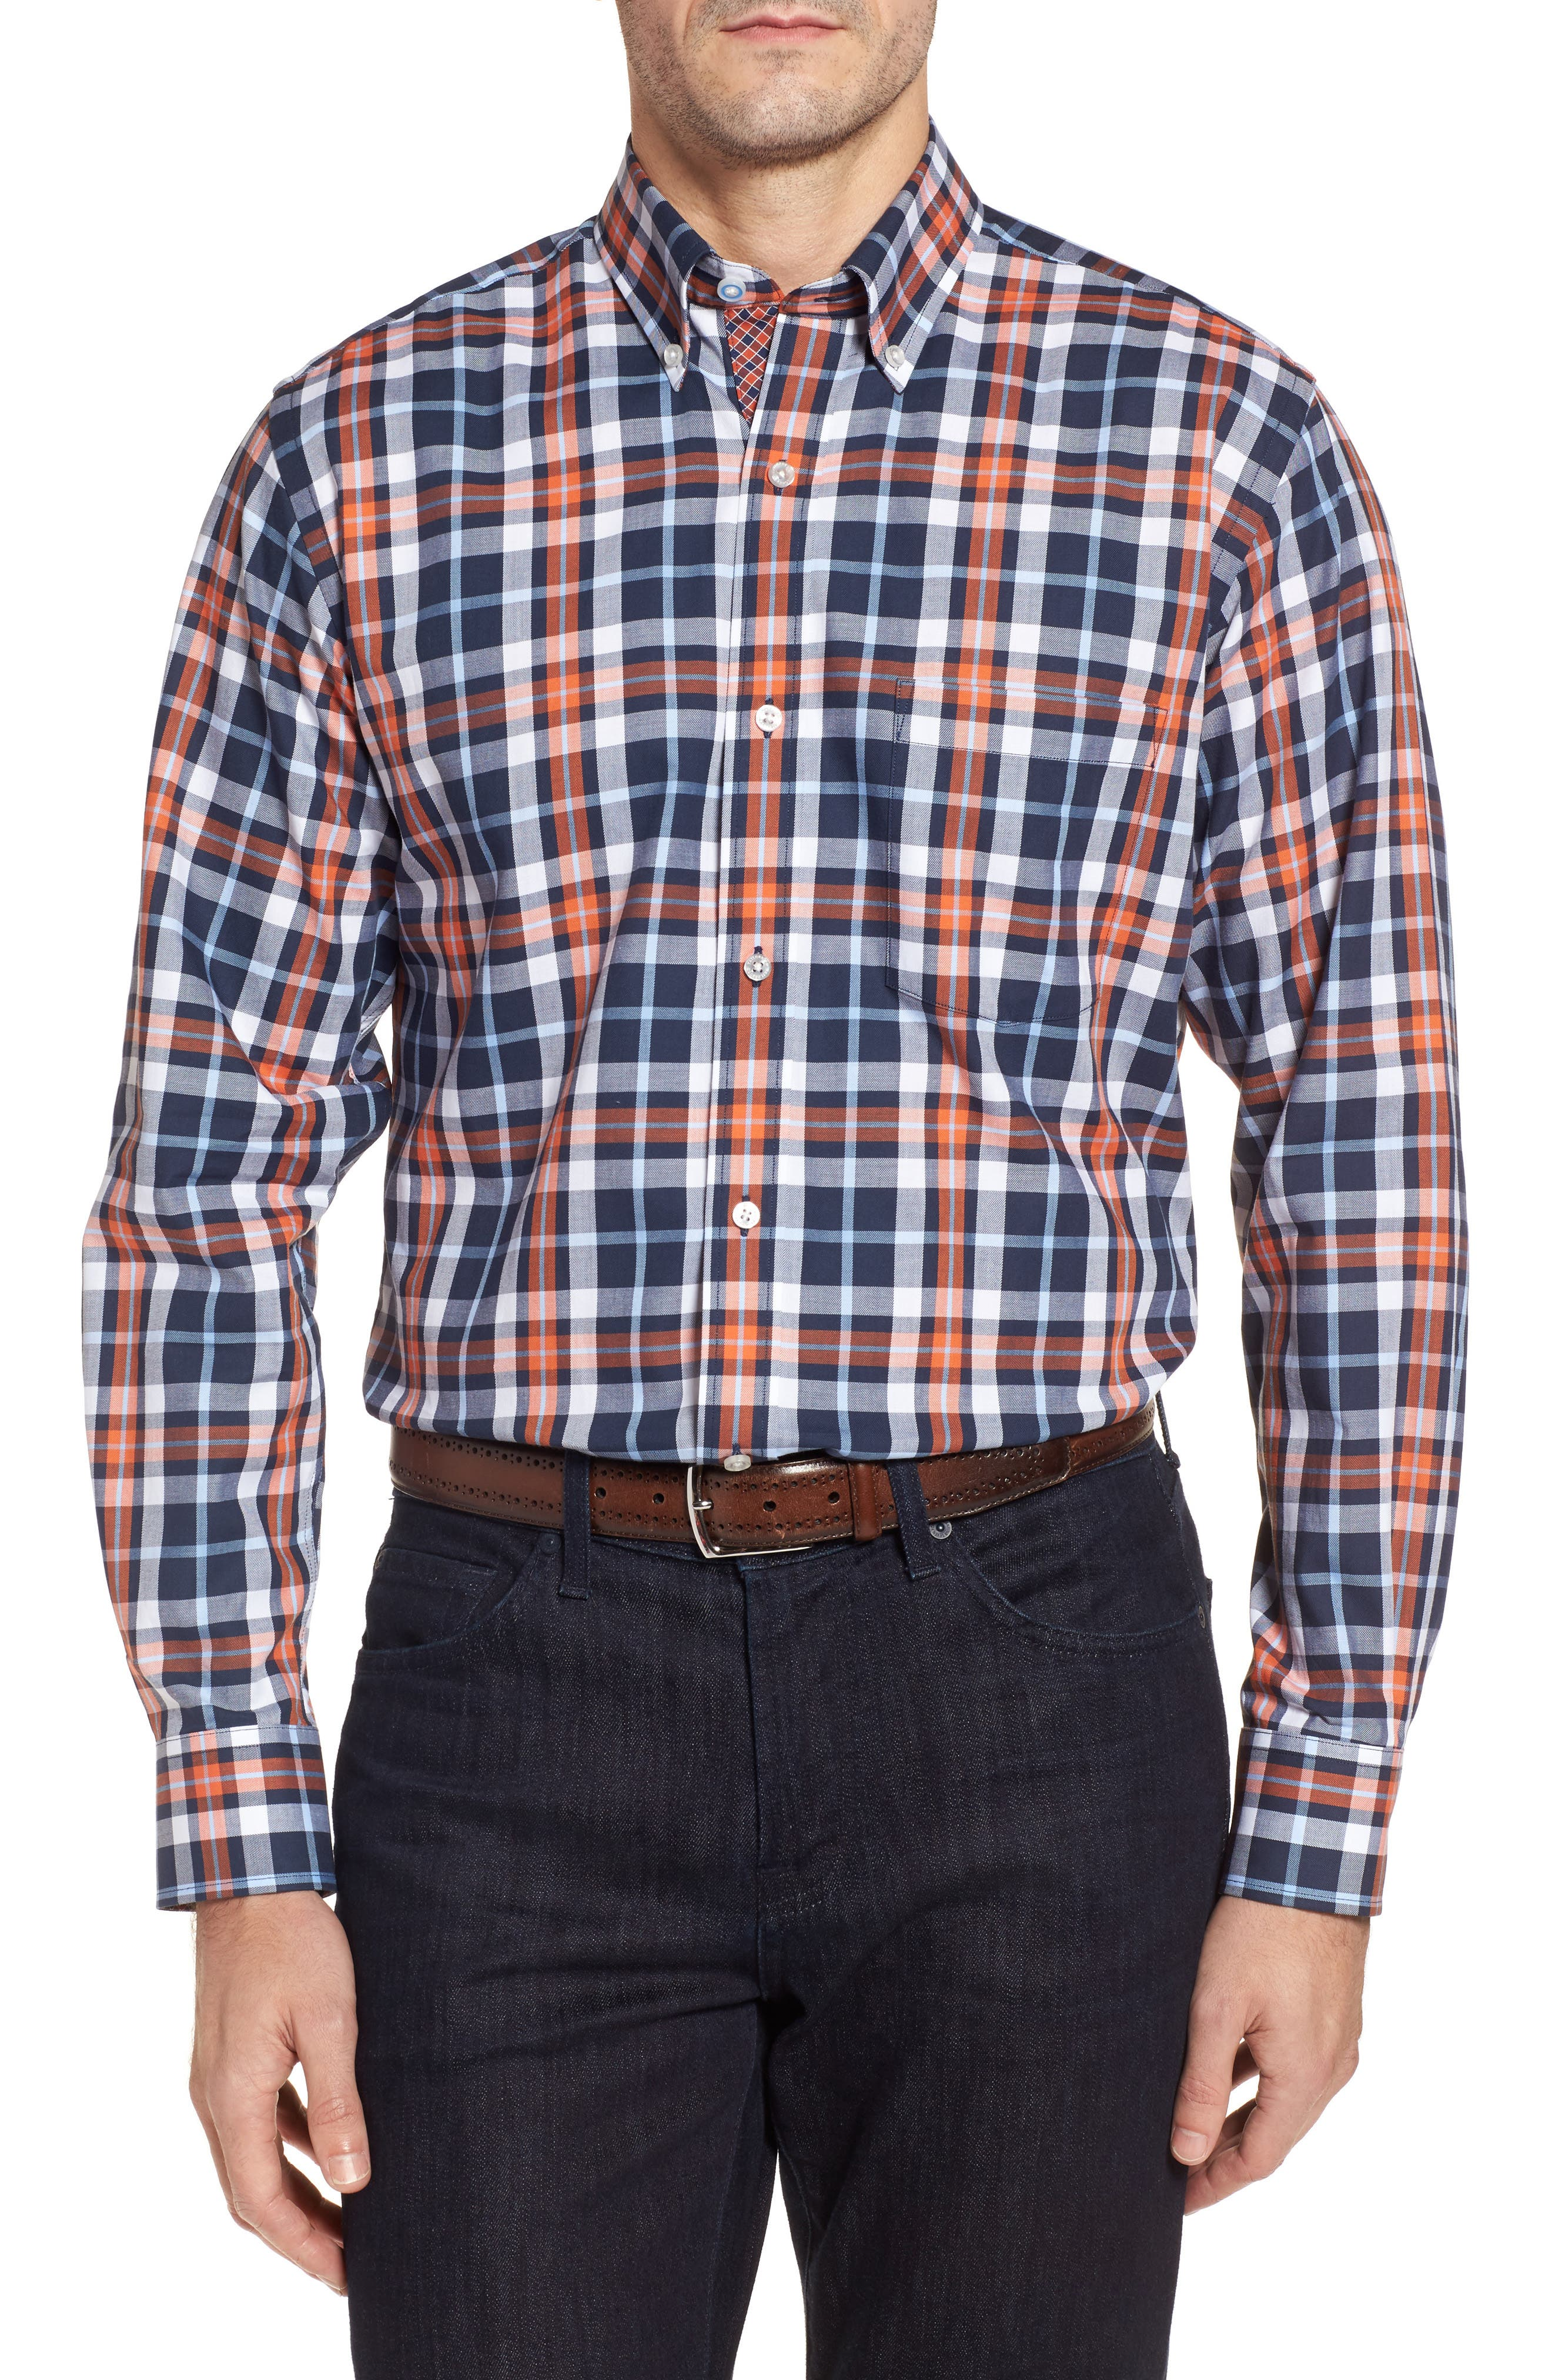 Crowley Plaid Twill Sport Shirt,                         Main,                         color, 410